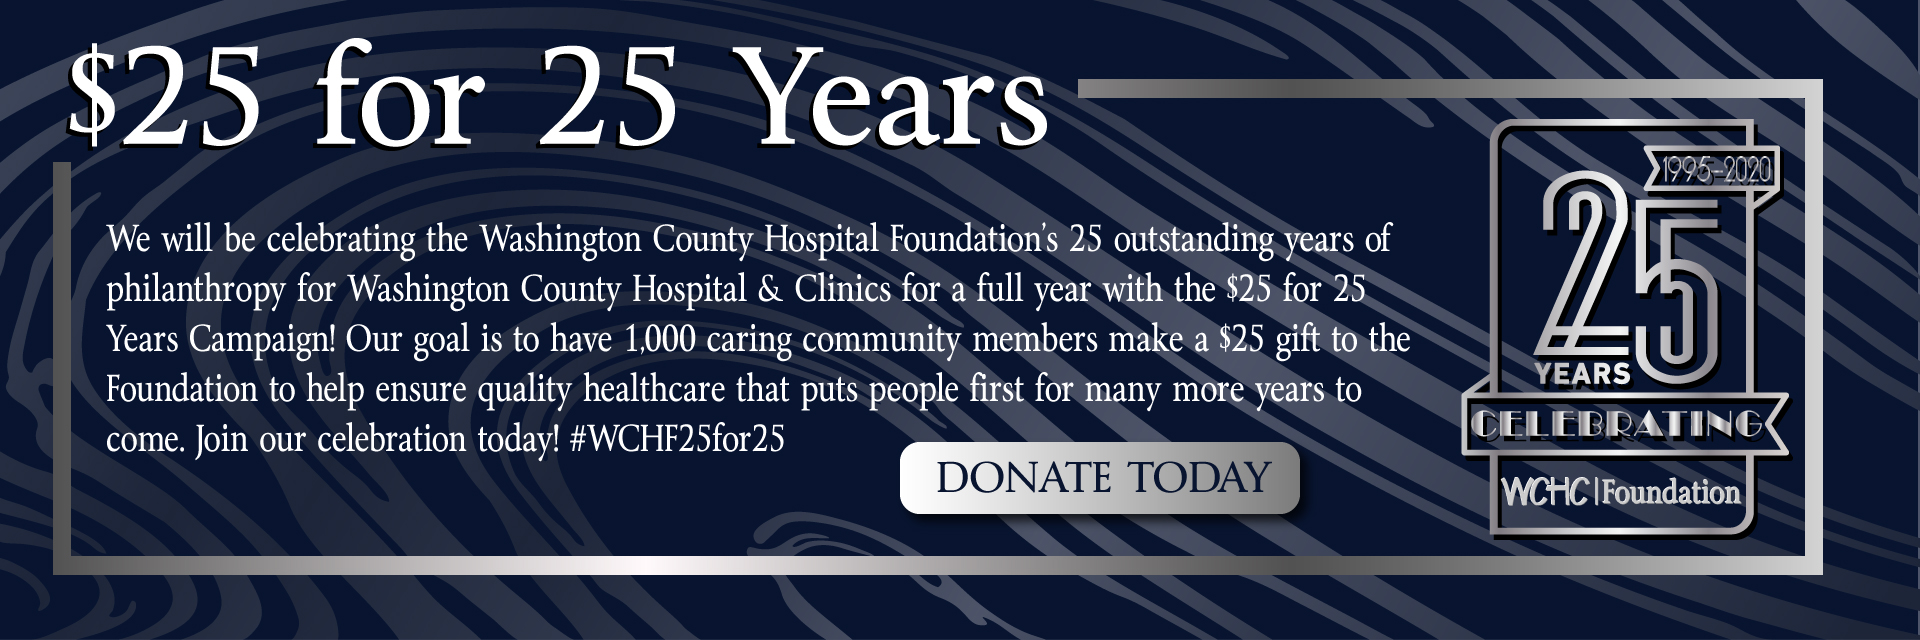 Washington County Hospital Foundation invites everyone to celebrate our 25th Anniversary through the $25 for 25 Campaign.